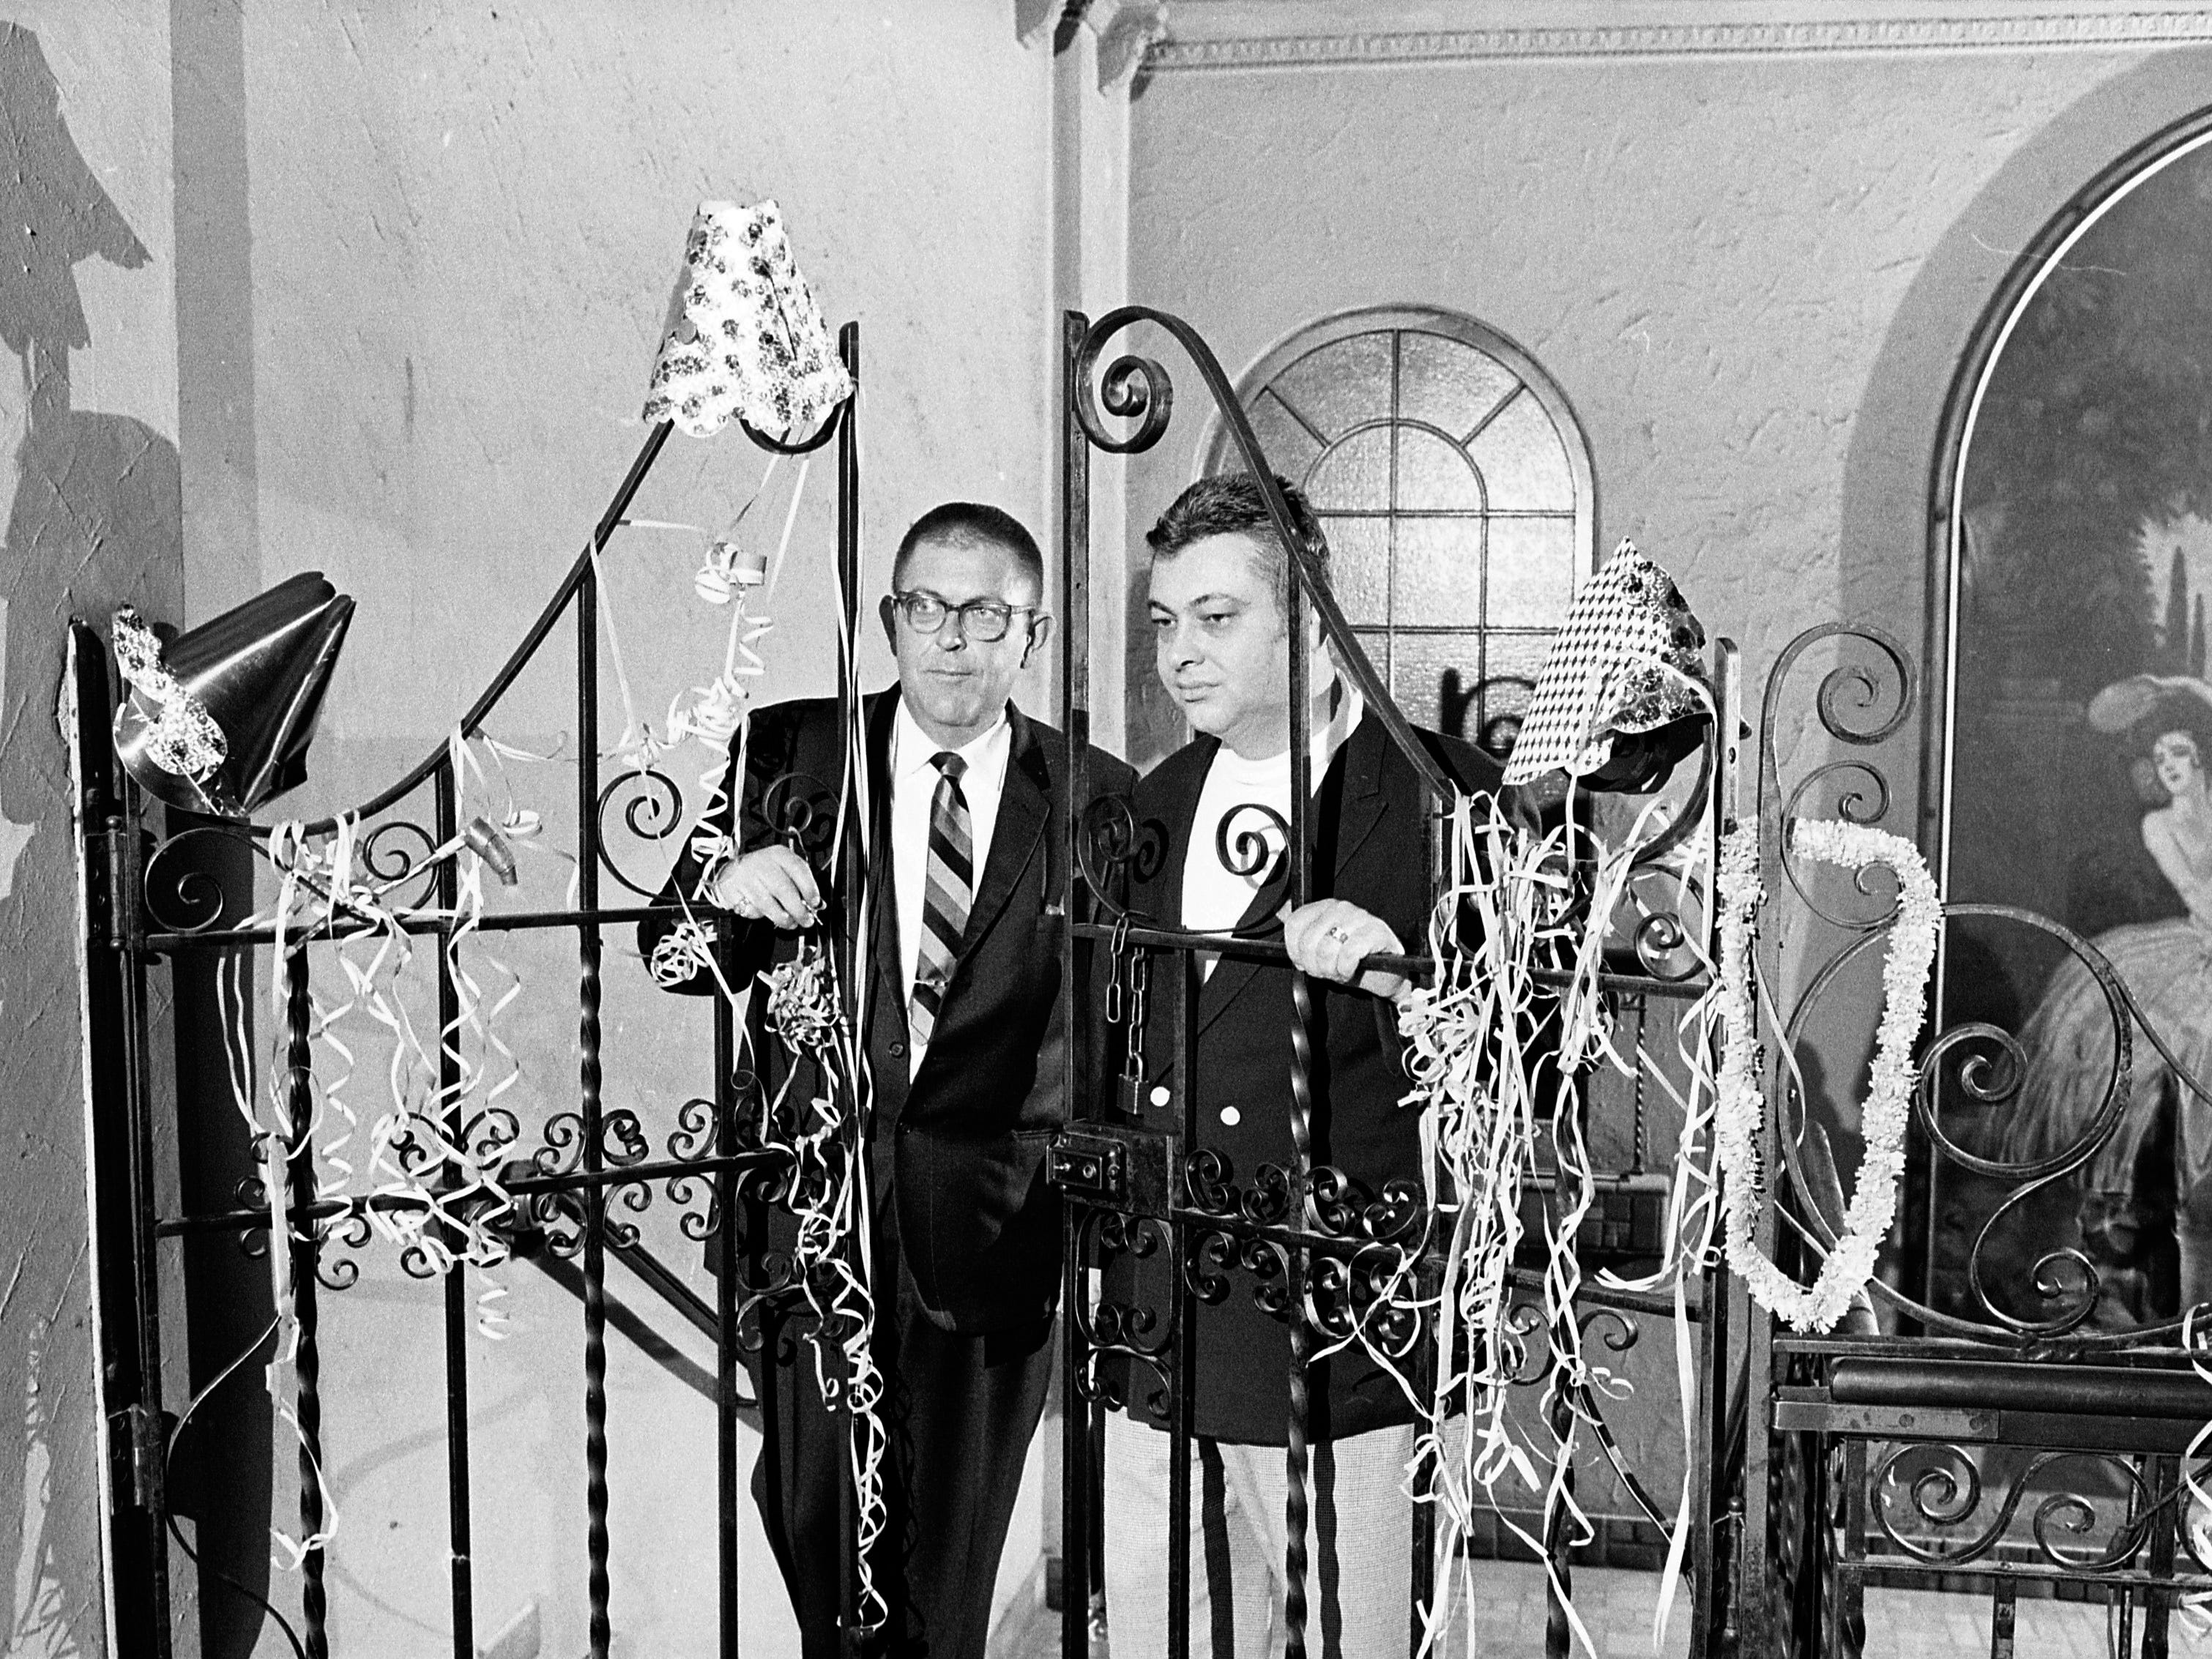 Robert Devine (left) closes the gates on Devine's Million Dollar Ballroom, 2401 W. Wisconsin Ave., on Feb. 25, 1968. The ballroom, for decades one of Milwaukee's top dance venues, closed its doors after 34 years because of declining business. The Eagles Club, which owned the building, reopened the ballroom in October 1968.